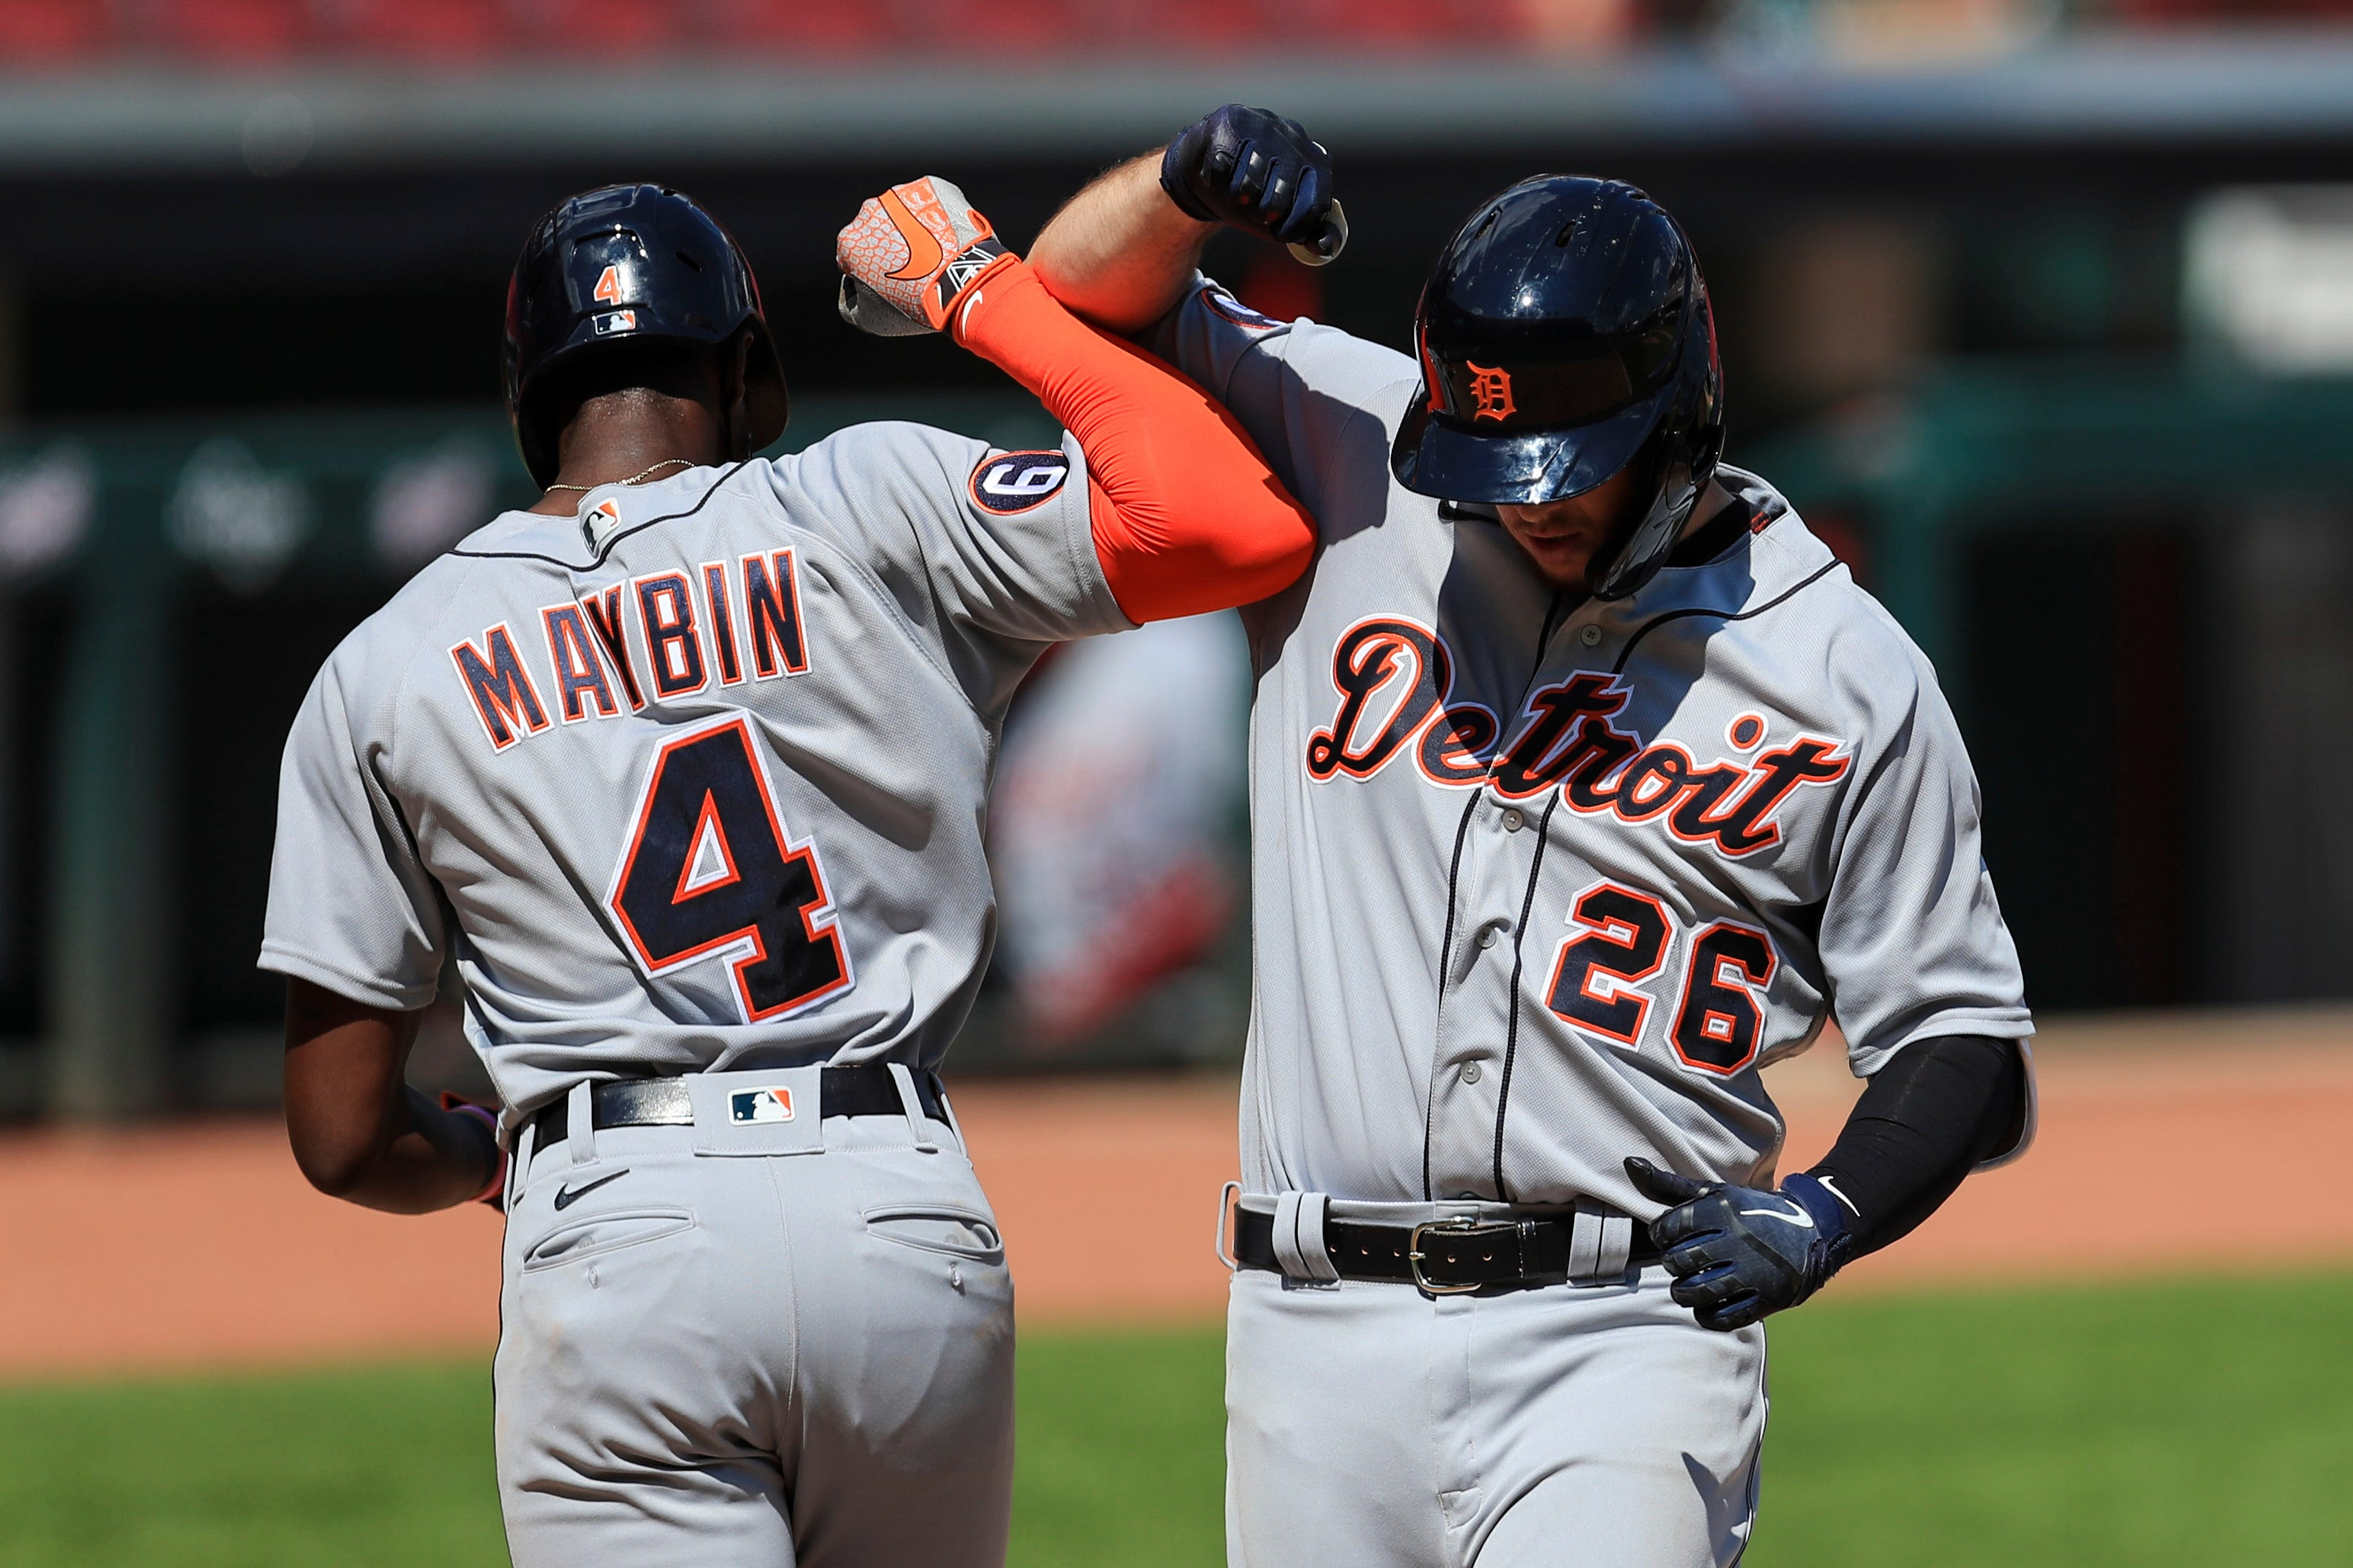 Tigers' C.J. Cron, right, celebrates with Cameron Maybin after hitting a two-run home run in the ninth inning against the Reds at Great American Ballpark on Sunday.